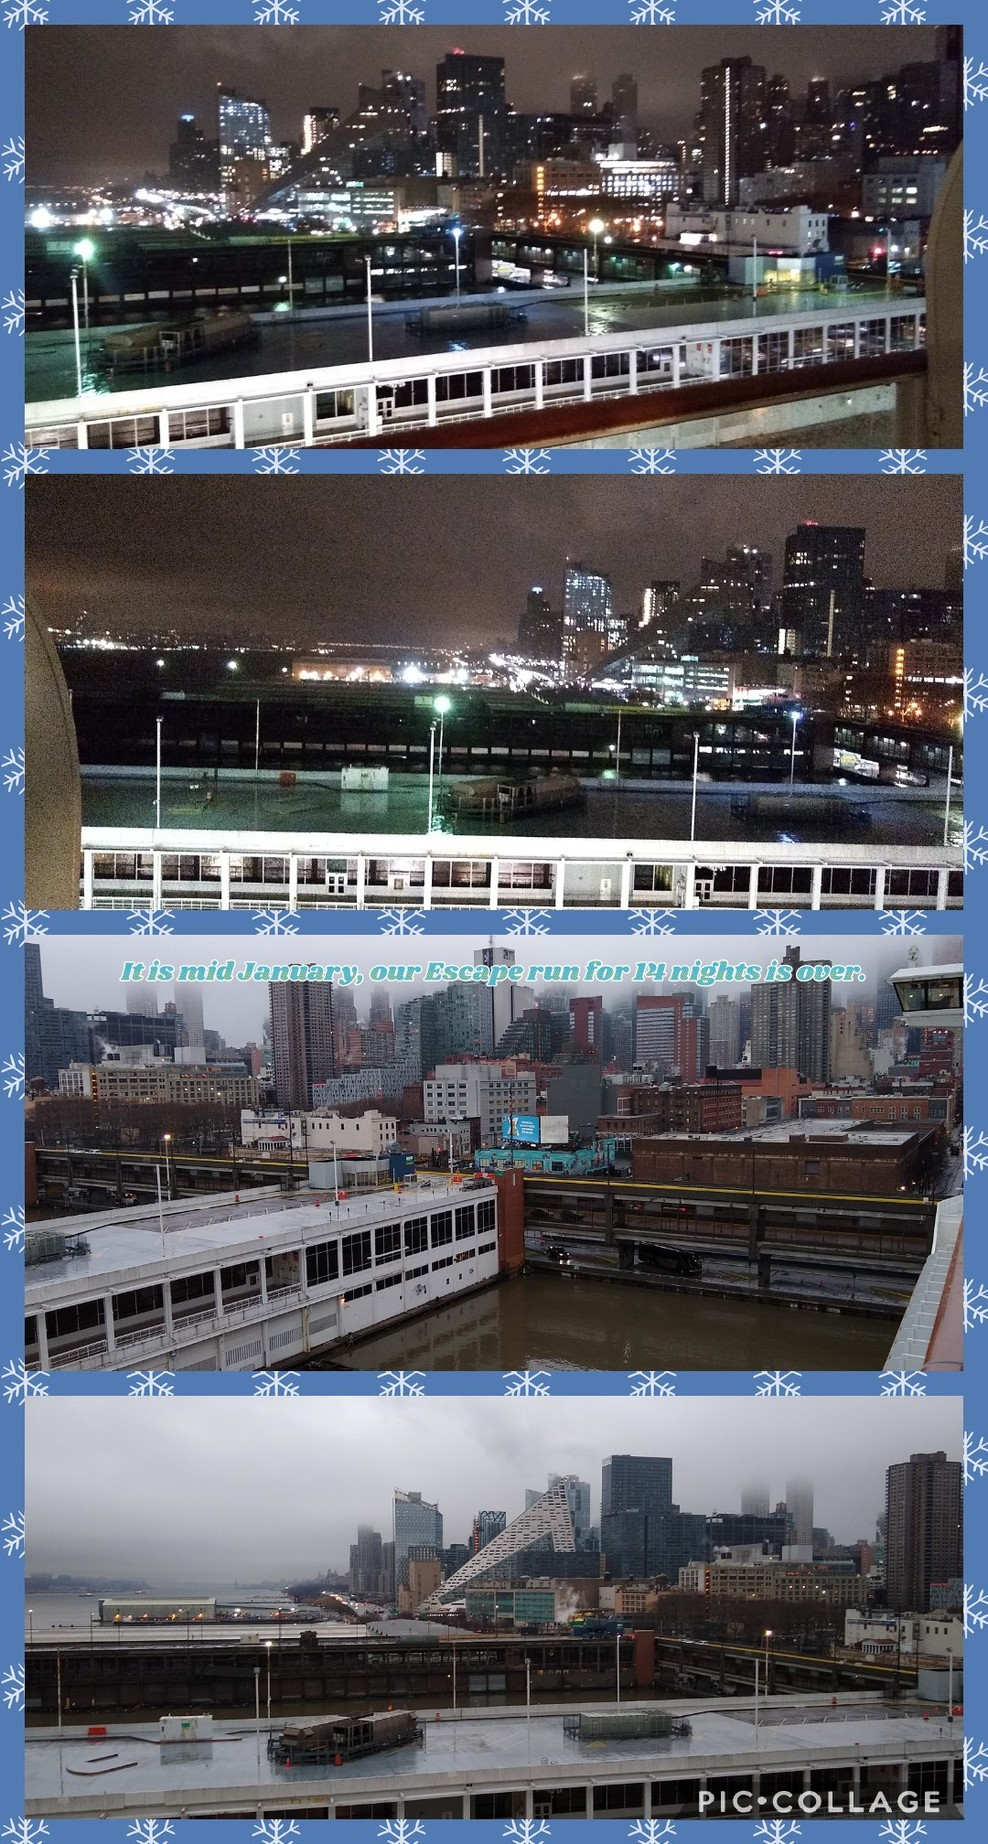 Pre-dawn arrival for early disembarkation, Pier 88 - Manhattan Cruise Termi